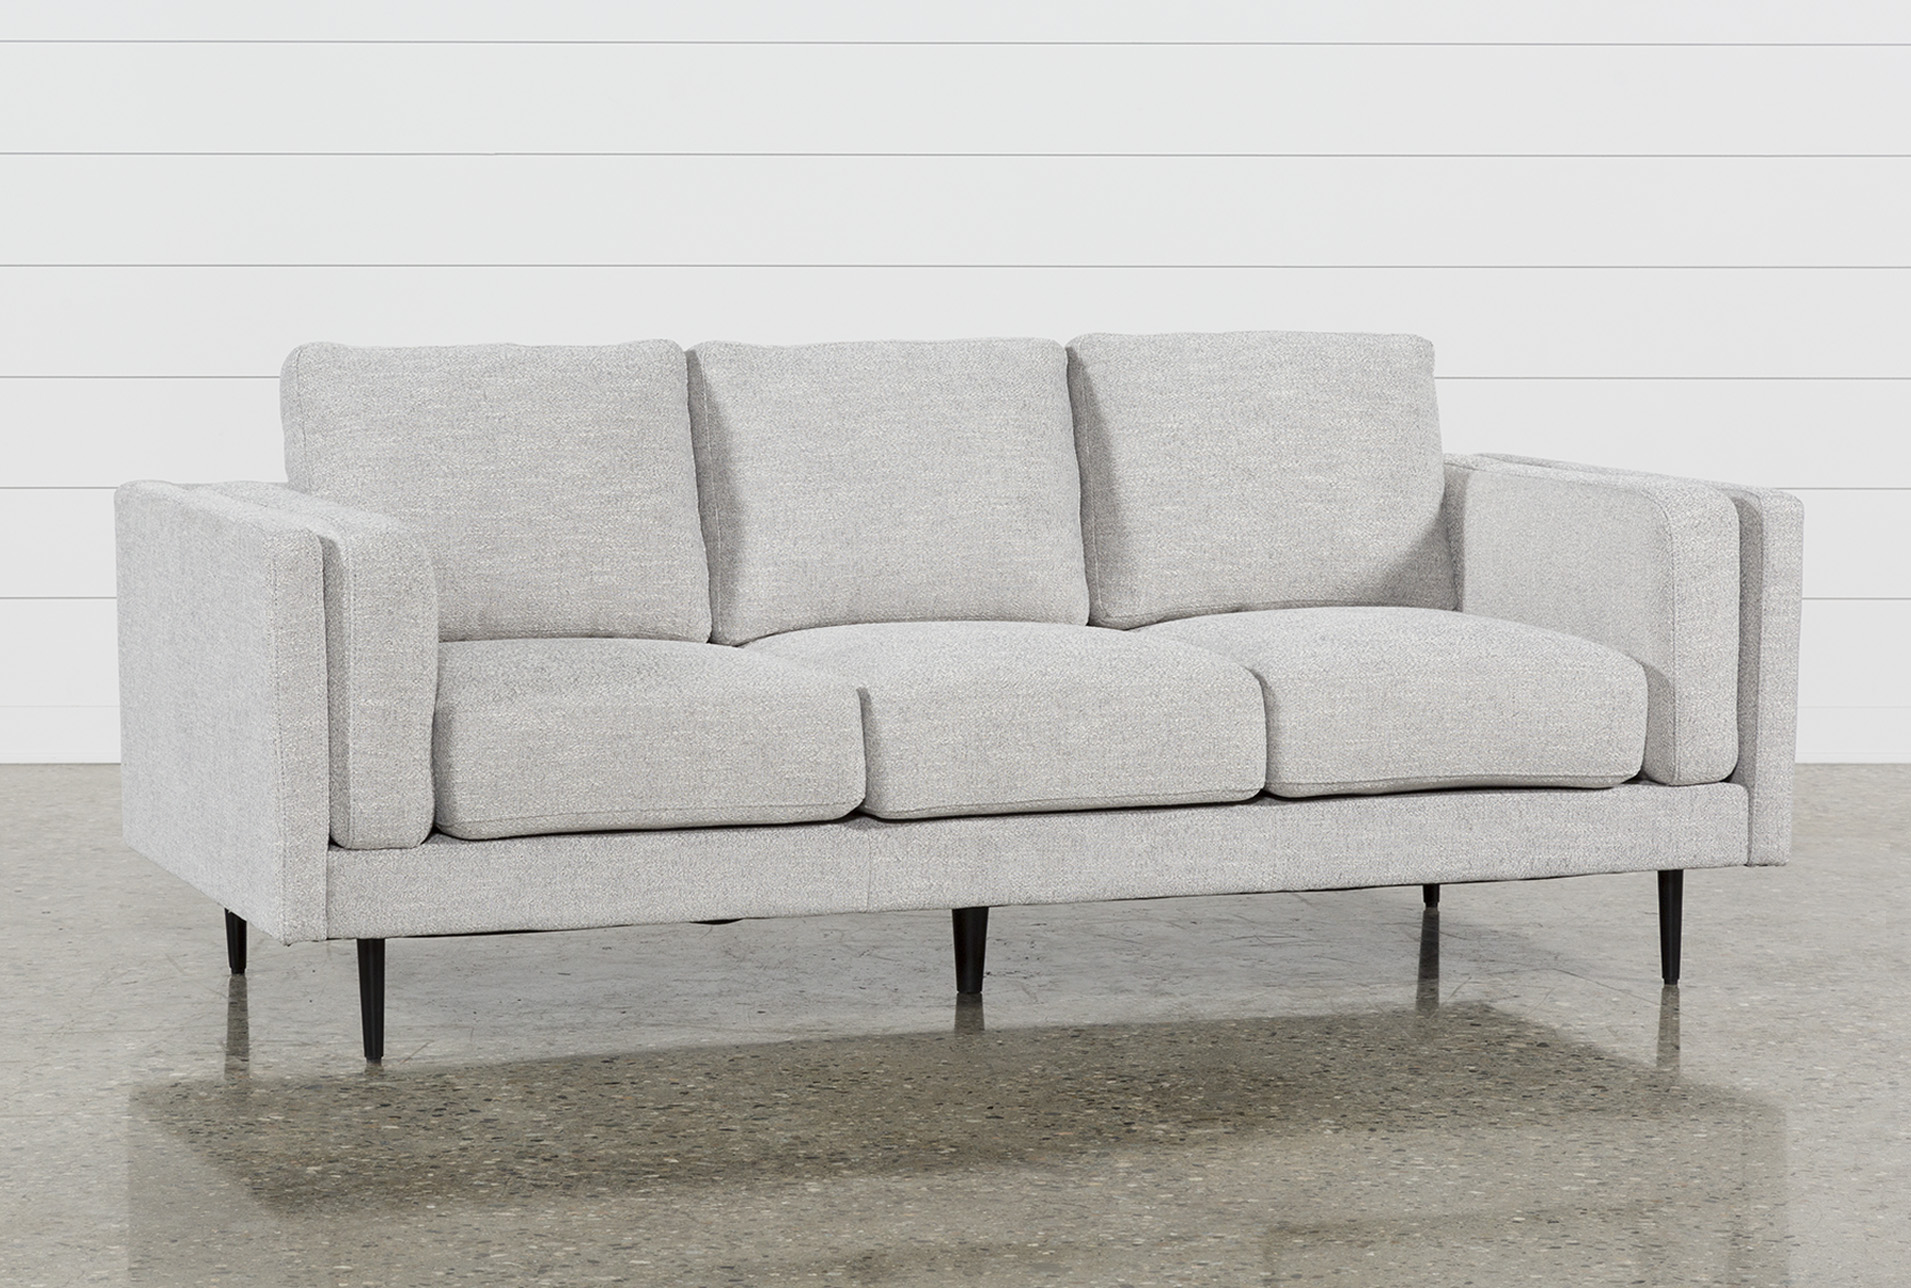 aquarius light grey sofa living spaces rh livingspaces com light gray sofas for sale light gray sofas for sale